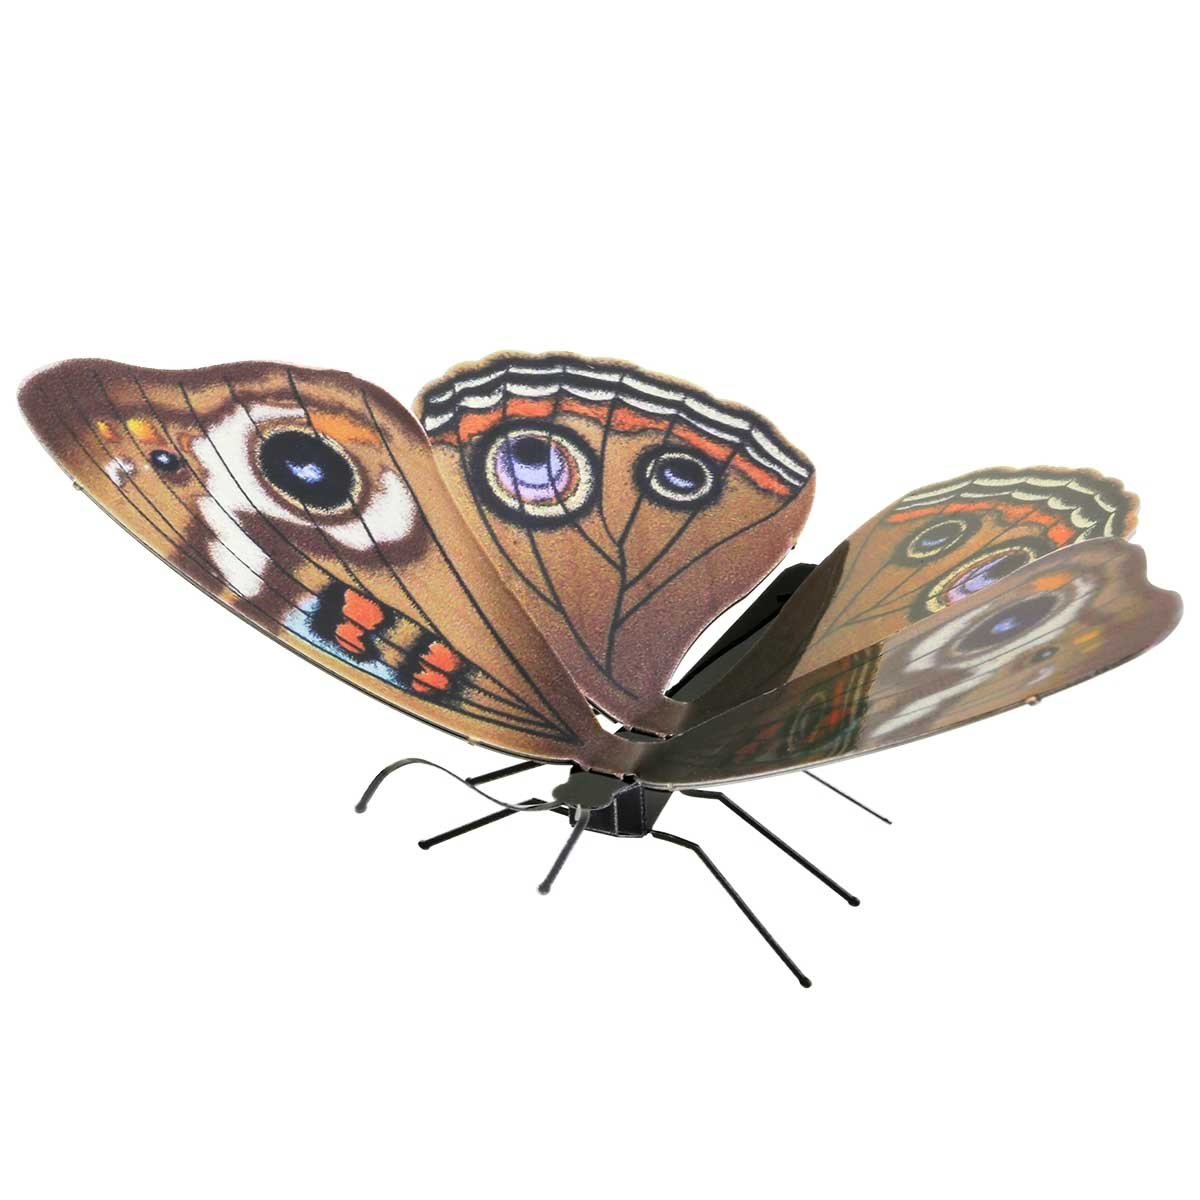 Buckeye Butterflies and Insects Metal Puzzles